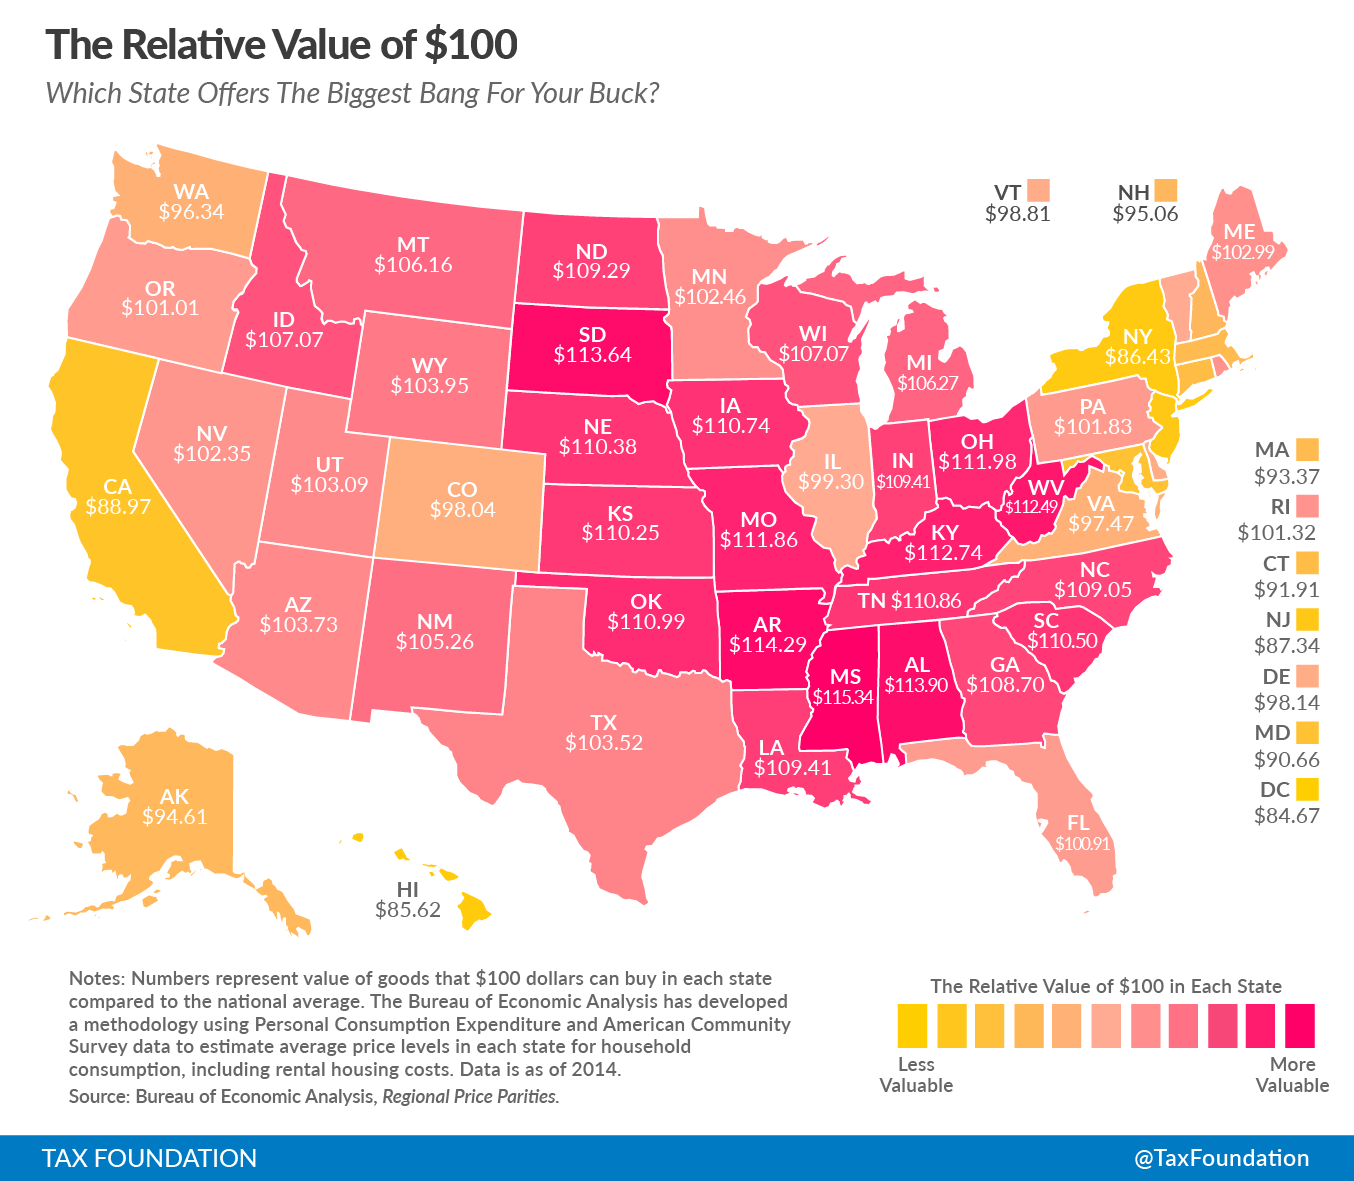 The Real Value of $100 in Each State - Tax Foundation